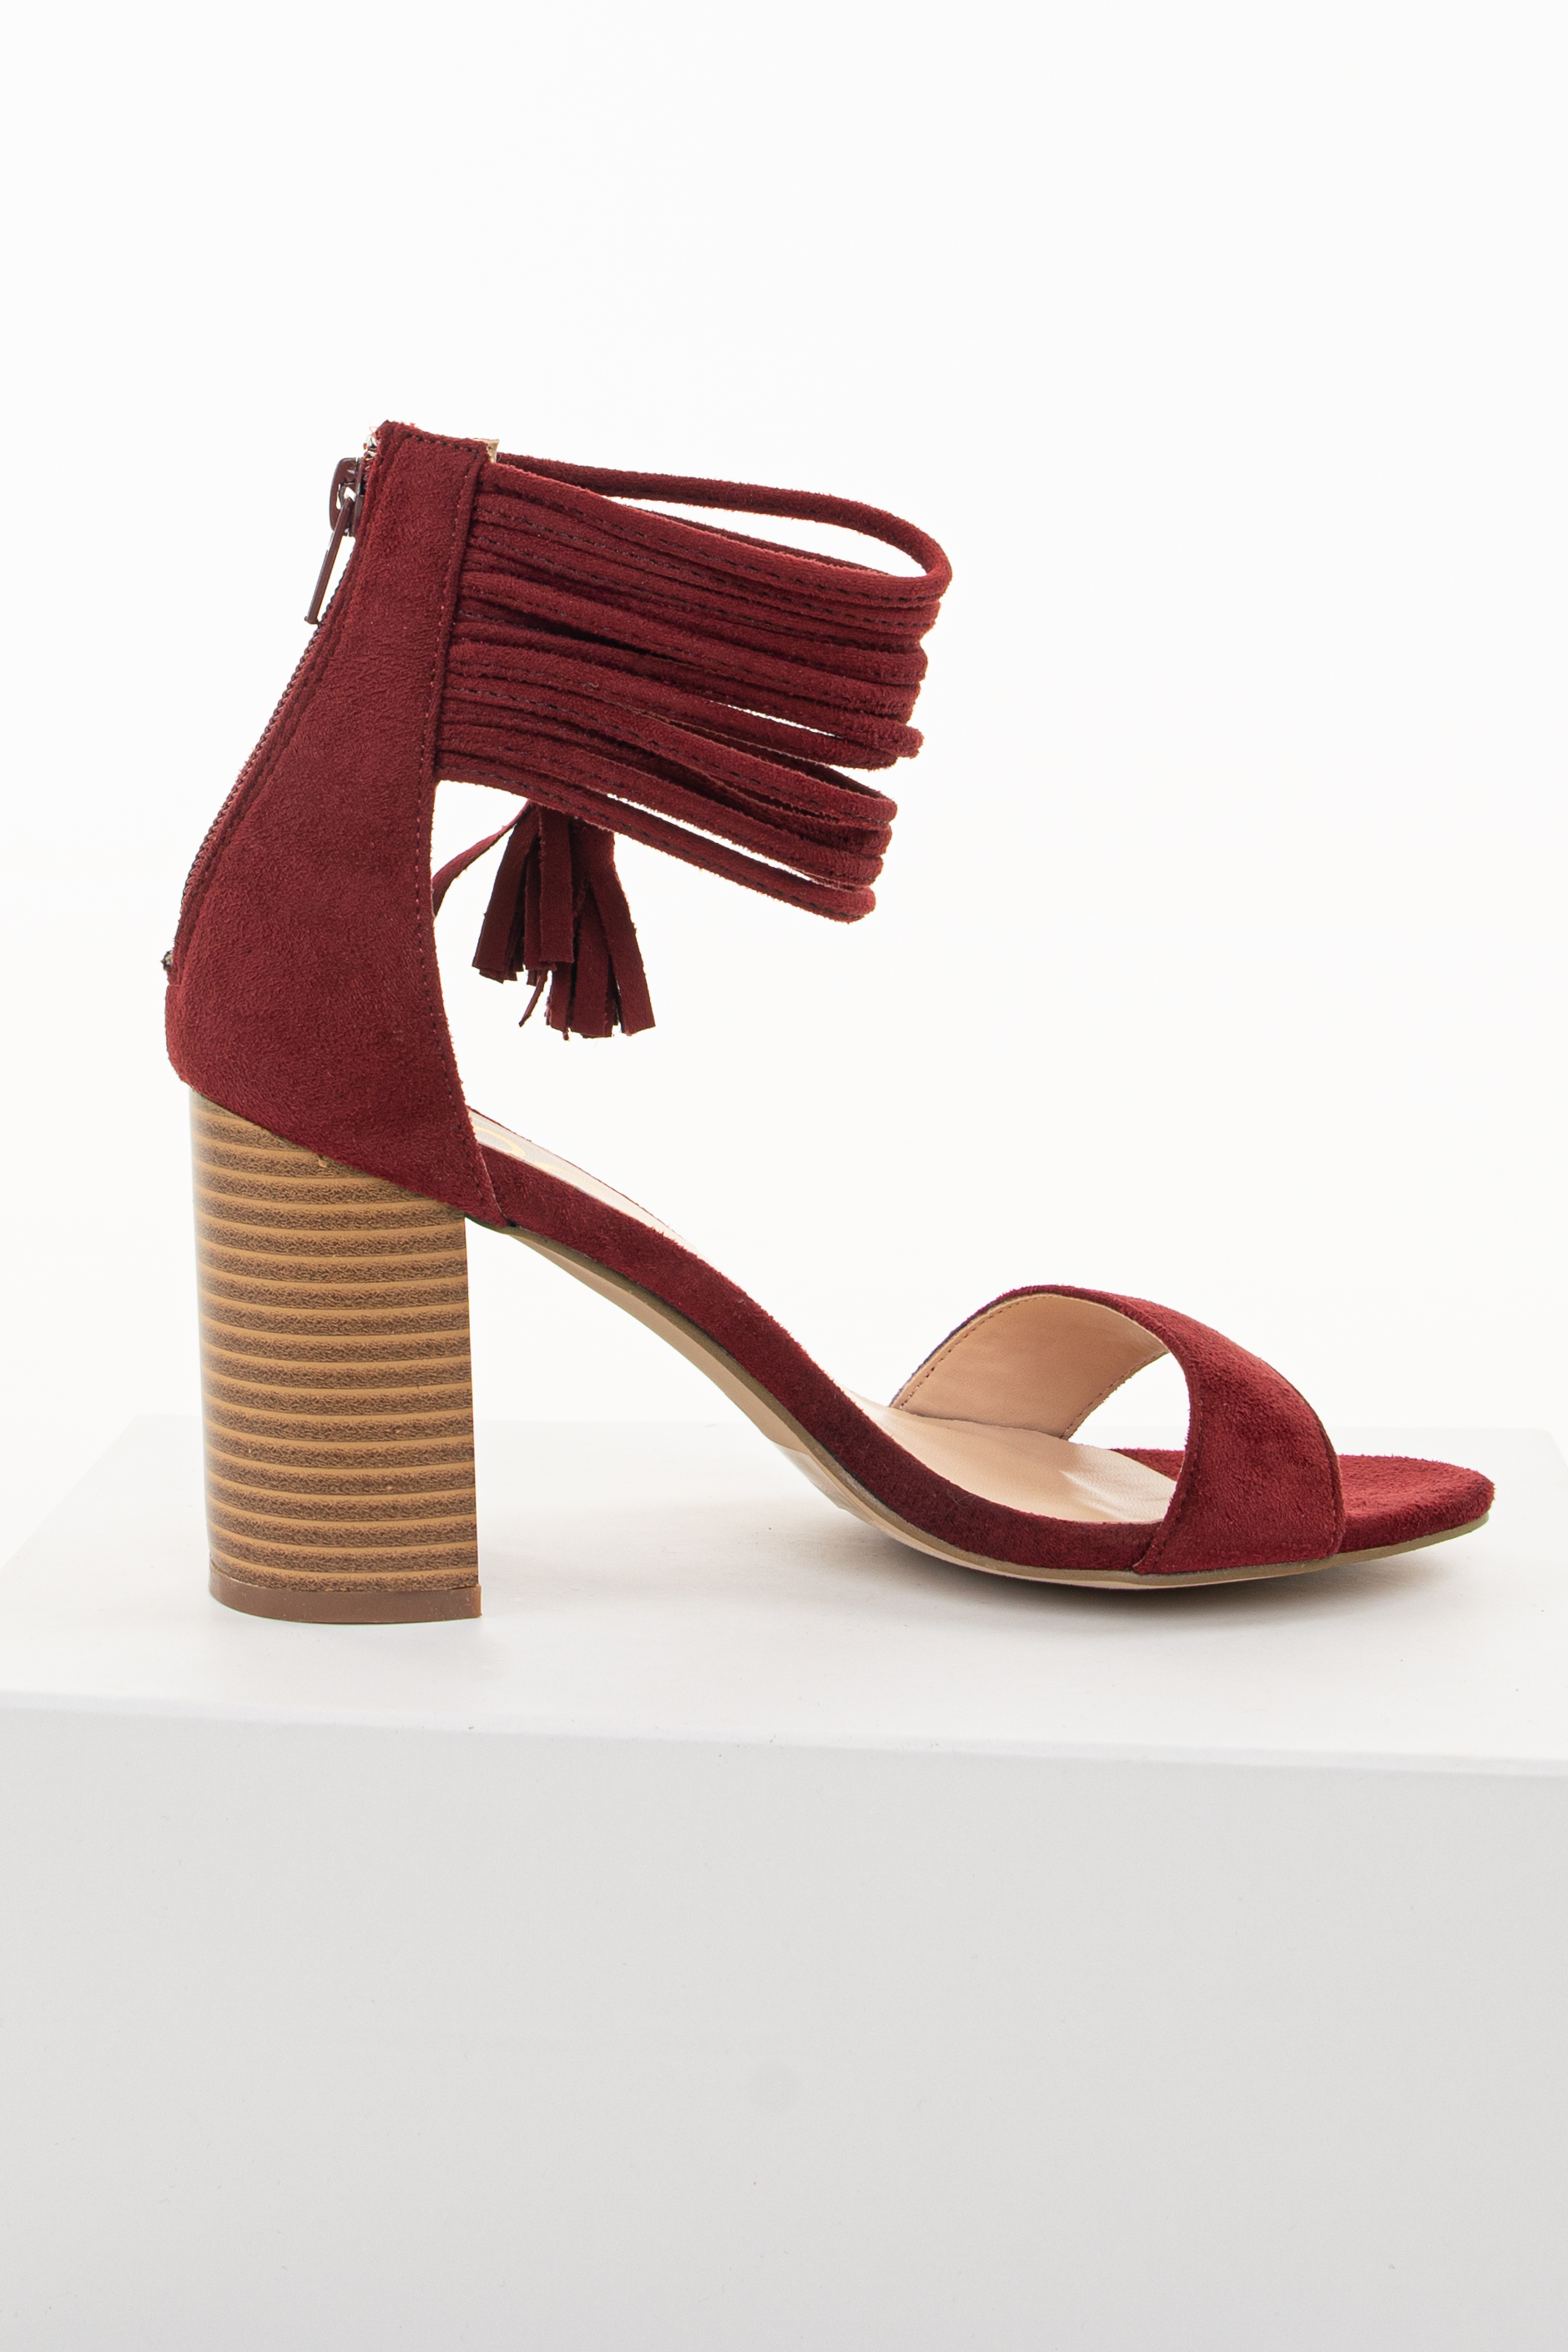 Maroon High Heeled Sandal with Strappy Ankle Details